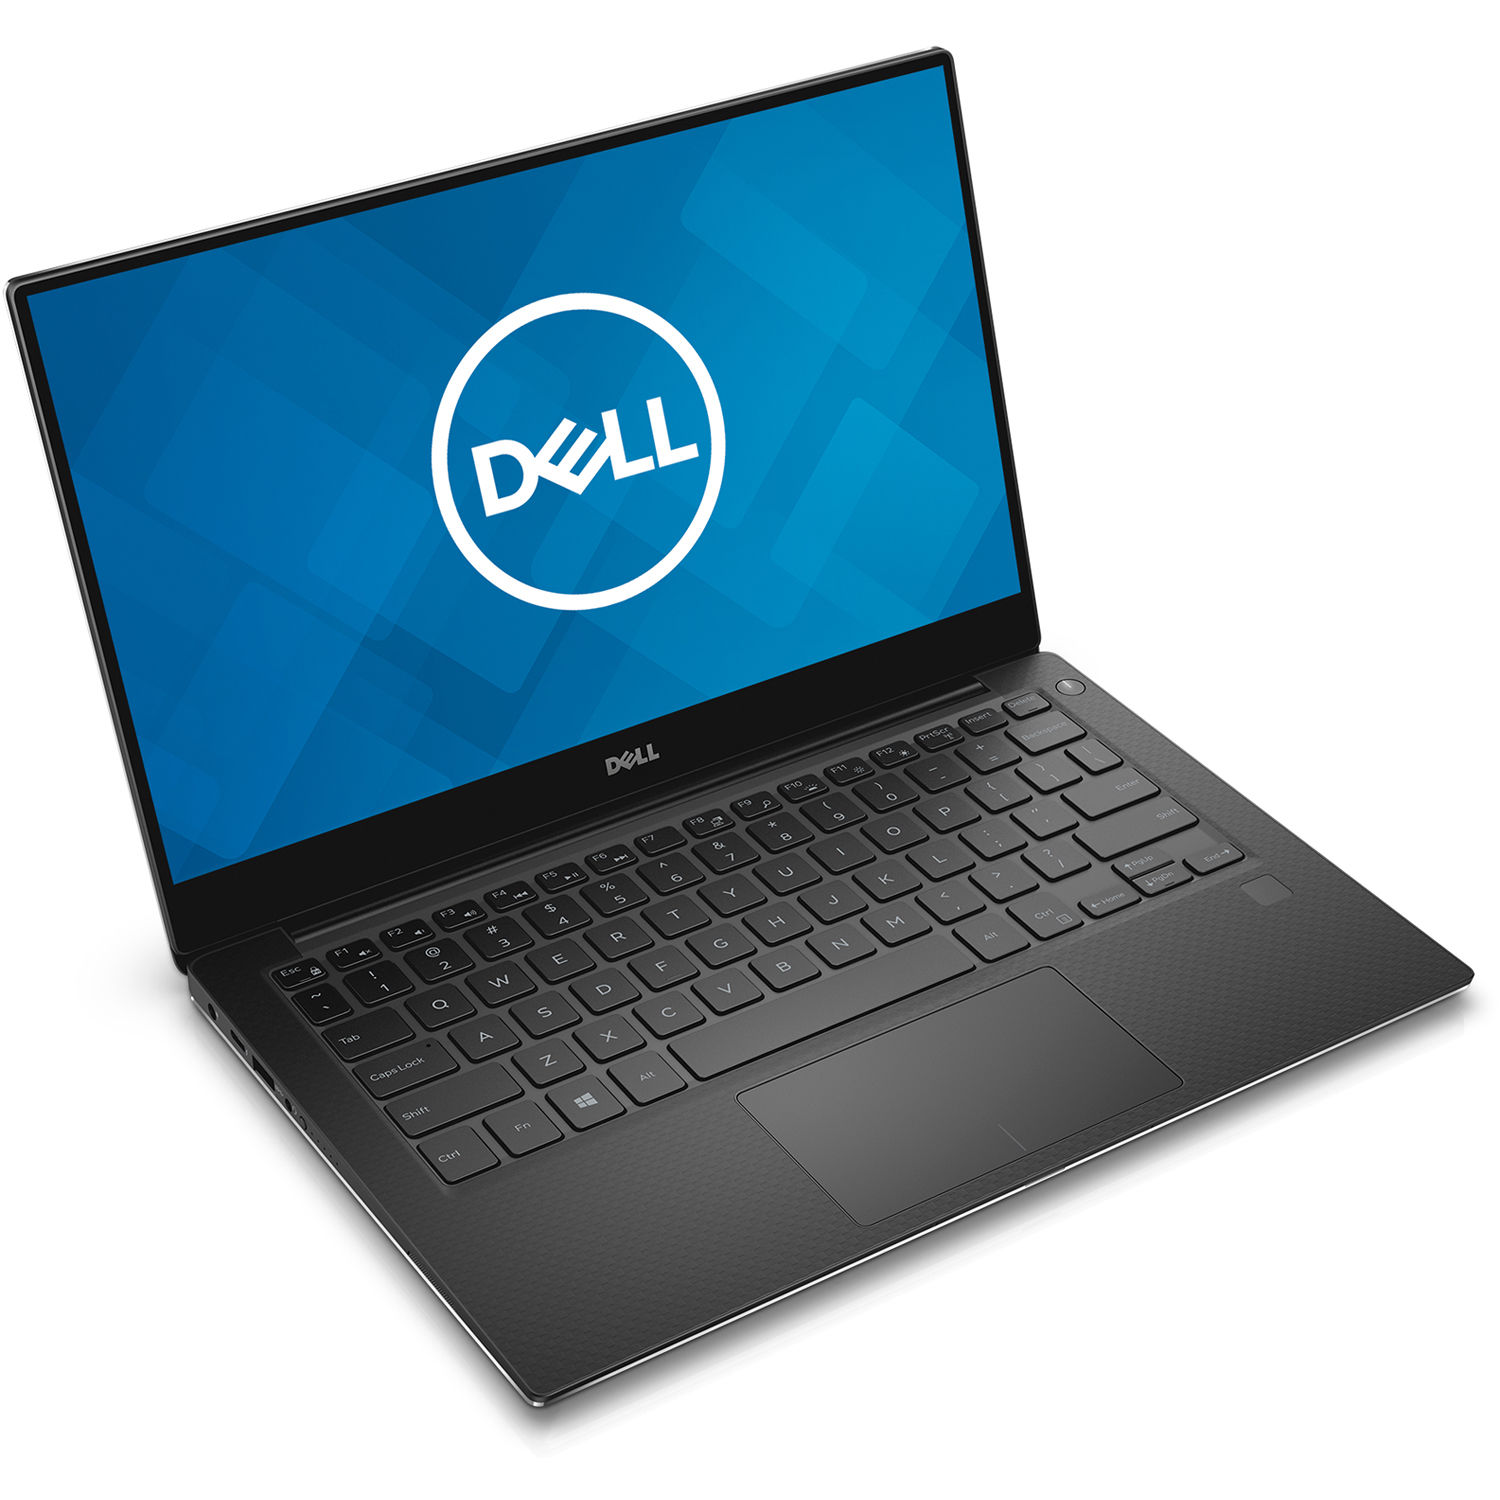 dell_xps9360_7697slv_xps_i7_7560u_16gb_512ssd_1358390